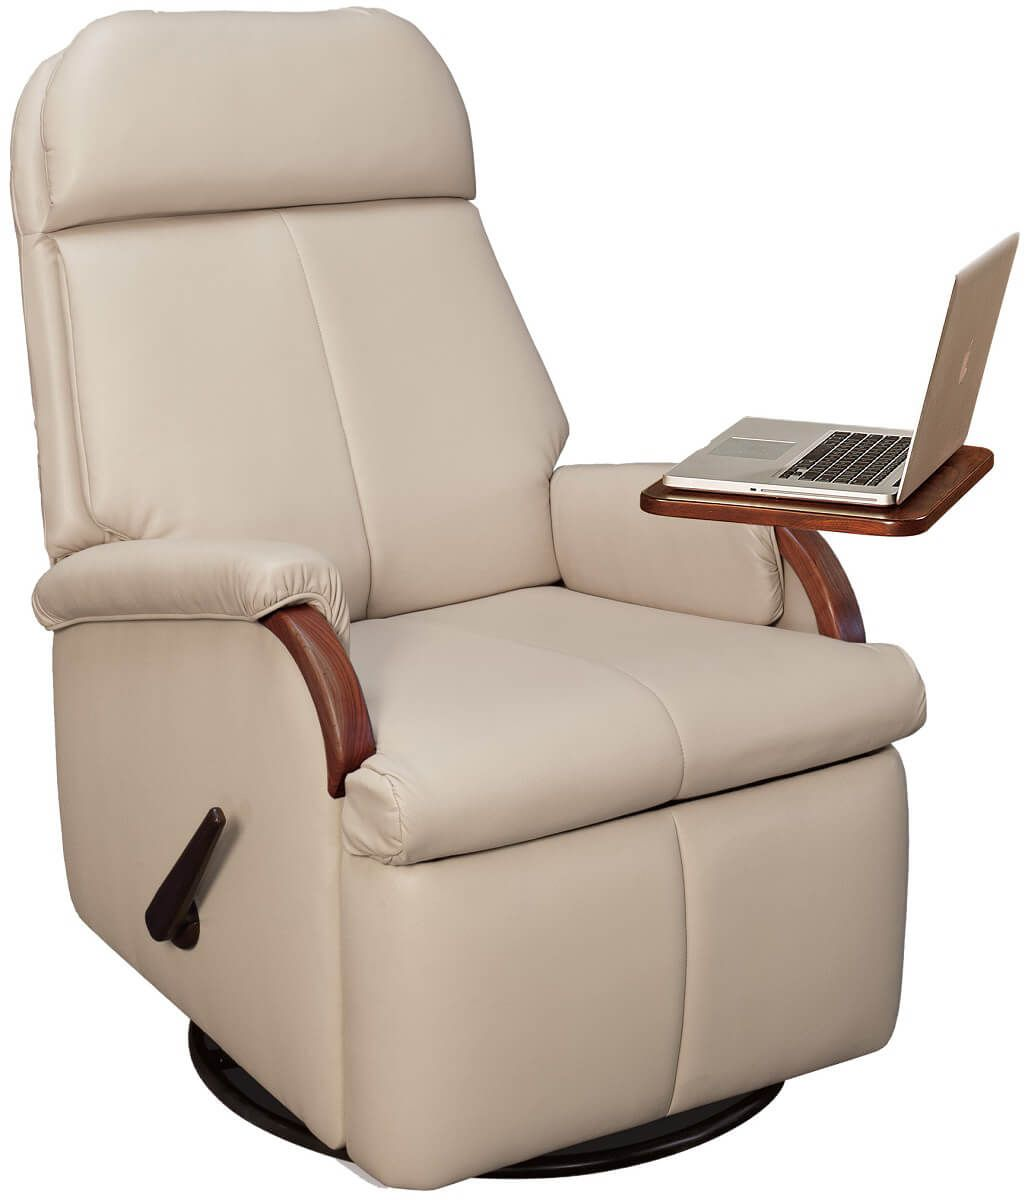 Roycroft Recliner with Computer Table